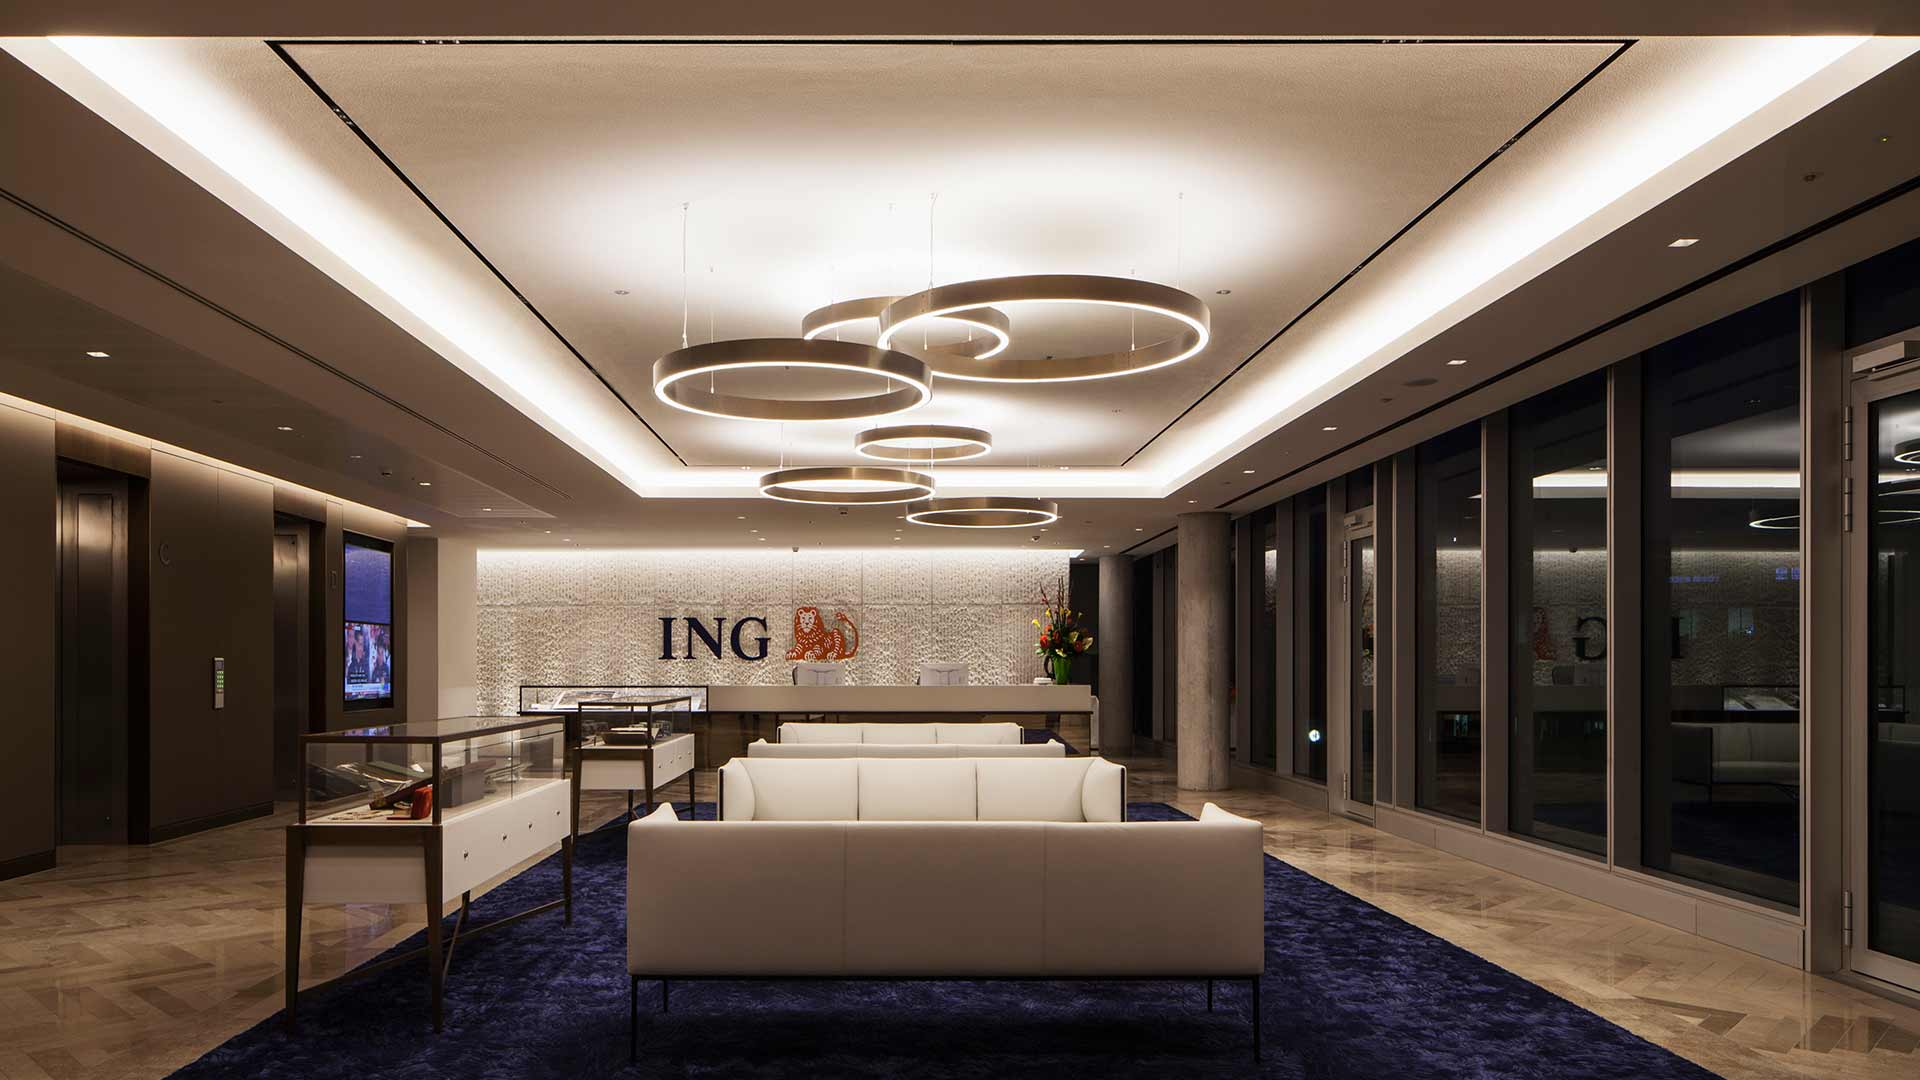 Y Lighting Ing Bank Uk Headquarters | Nulty | Lighting Design Consultants